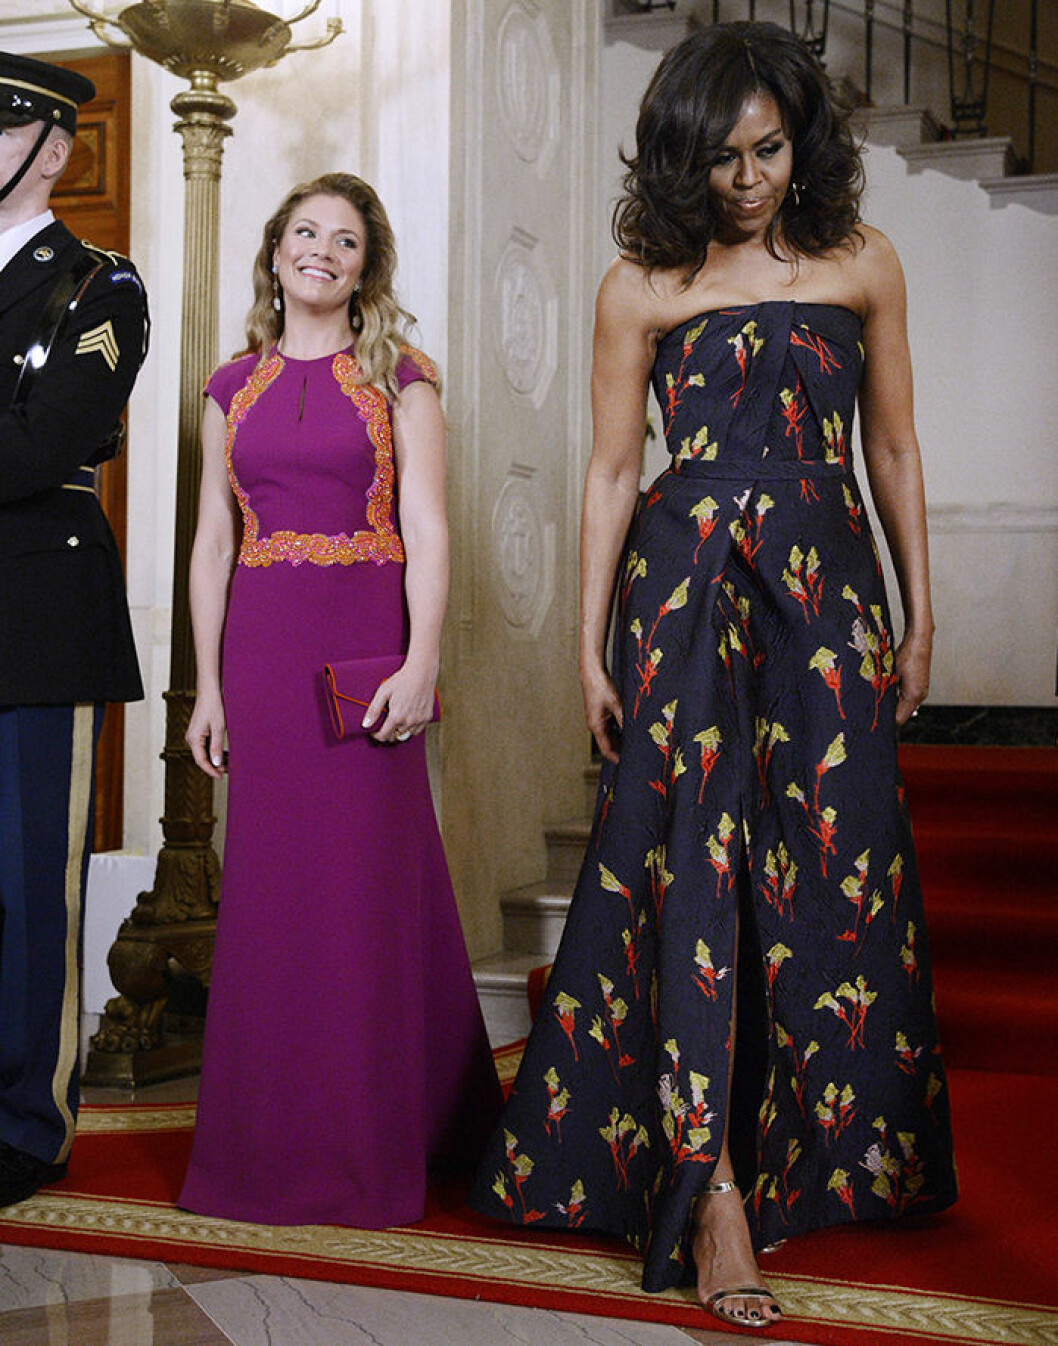 First Lady Michelle Obama, right, and Mrs. Sophie GrÈgoire Trudeau, left, walk inside the White House March 10, 2016 in Washington,D.C. Credit: Olivier Douliery / Pool via CNP - NO†WIRE†SERVICE - (c) DPA / IBL BildbyrÂ